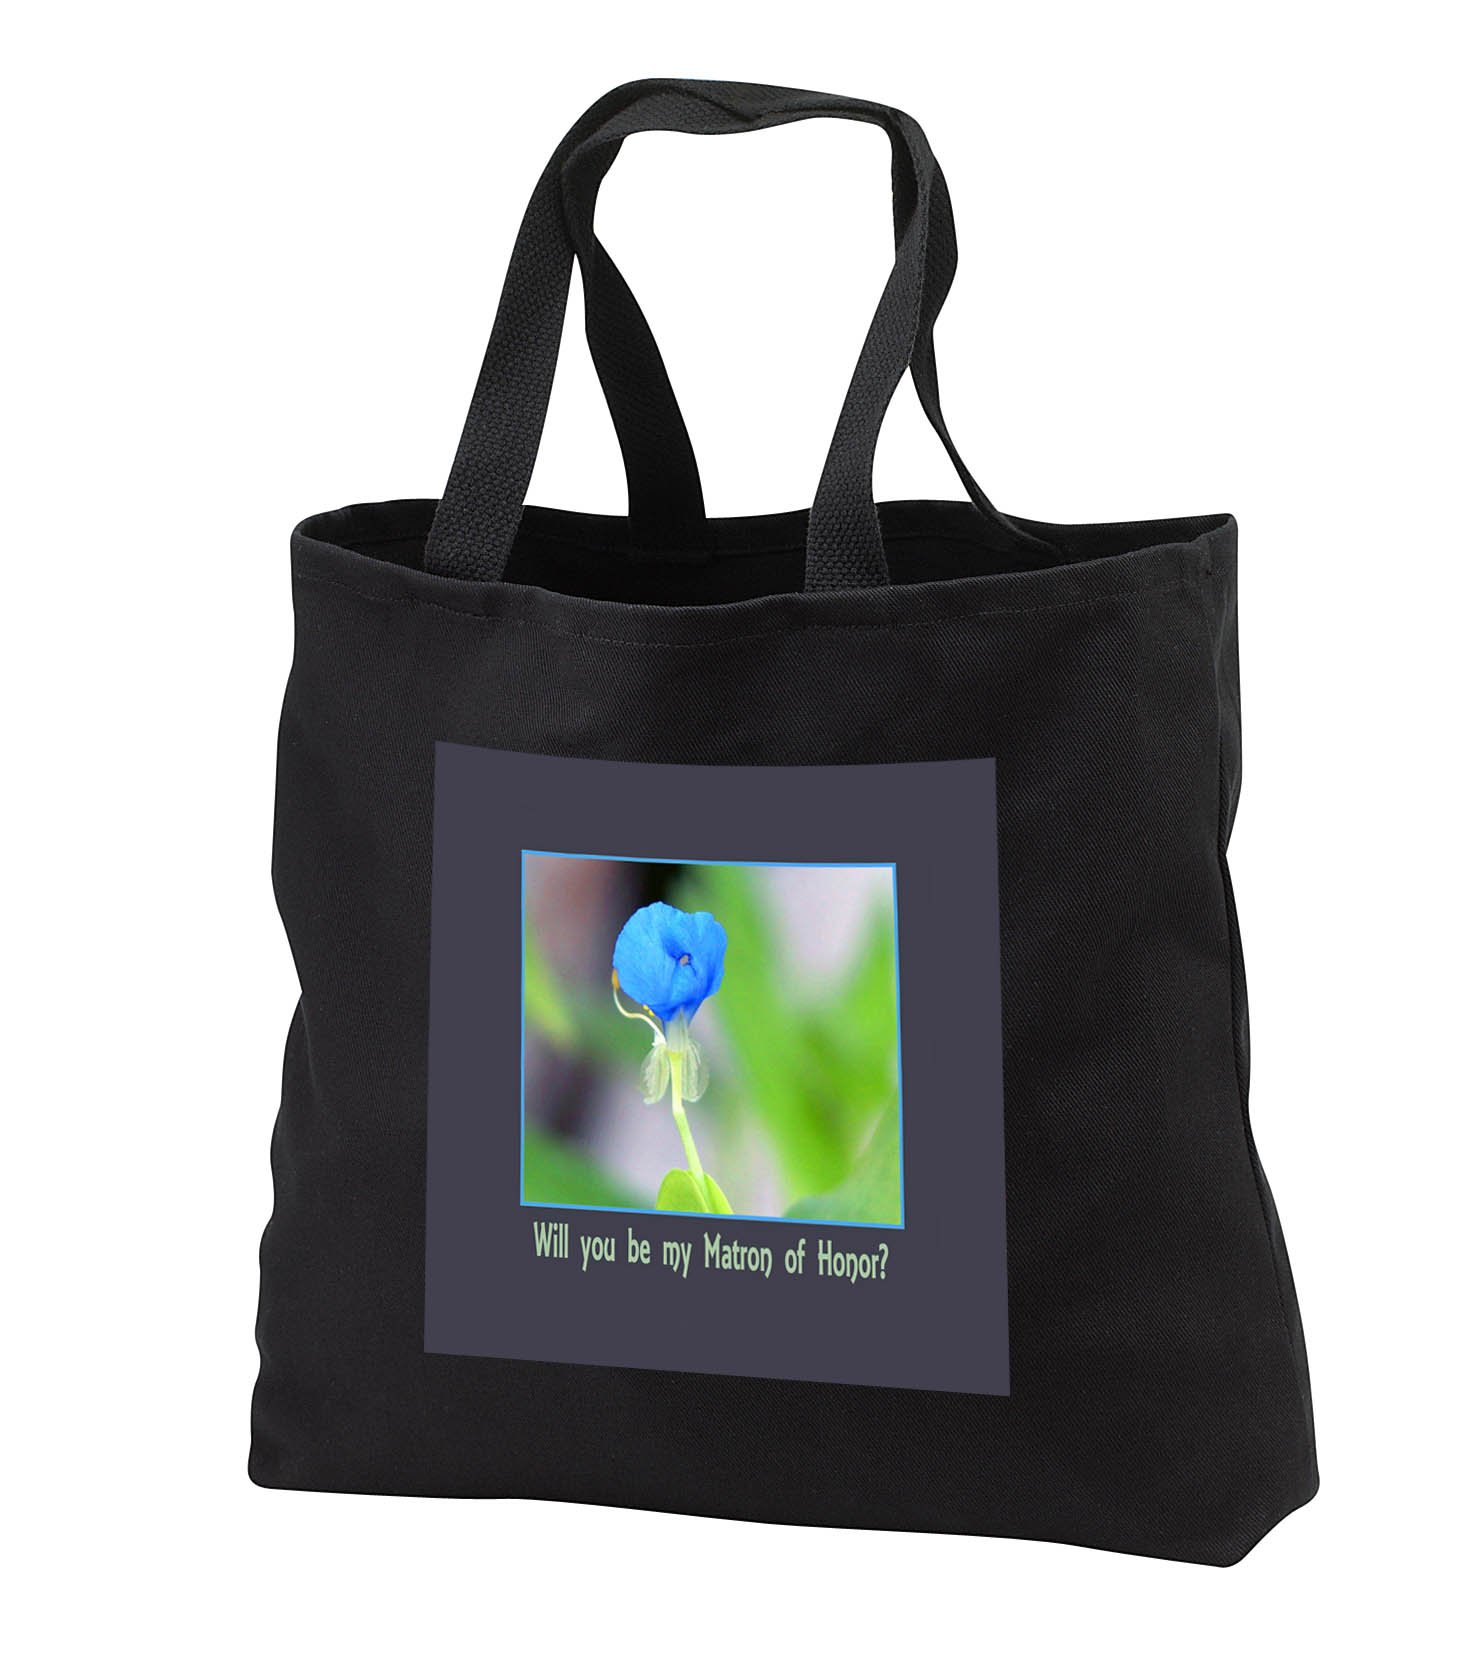 Beverly Turner Wedding Bridal Party Design - Will you be my Matron of Honor, Blue Water Iris Flower - Tote Bags - Black Tote Bag 14w x 14h x 3d (tb_282204_1)